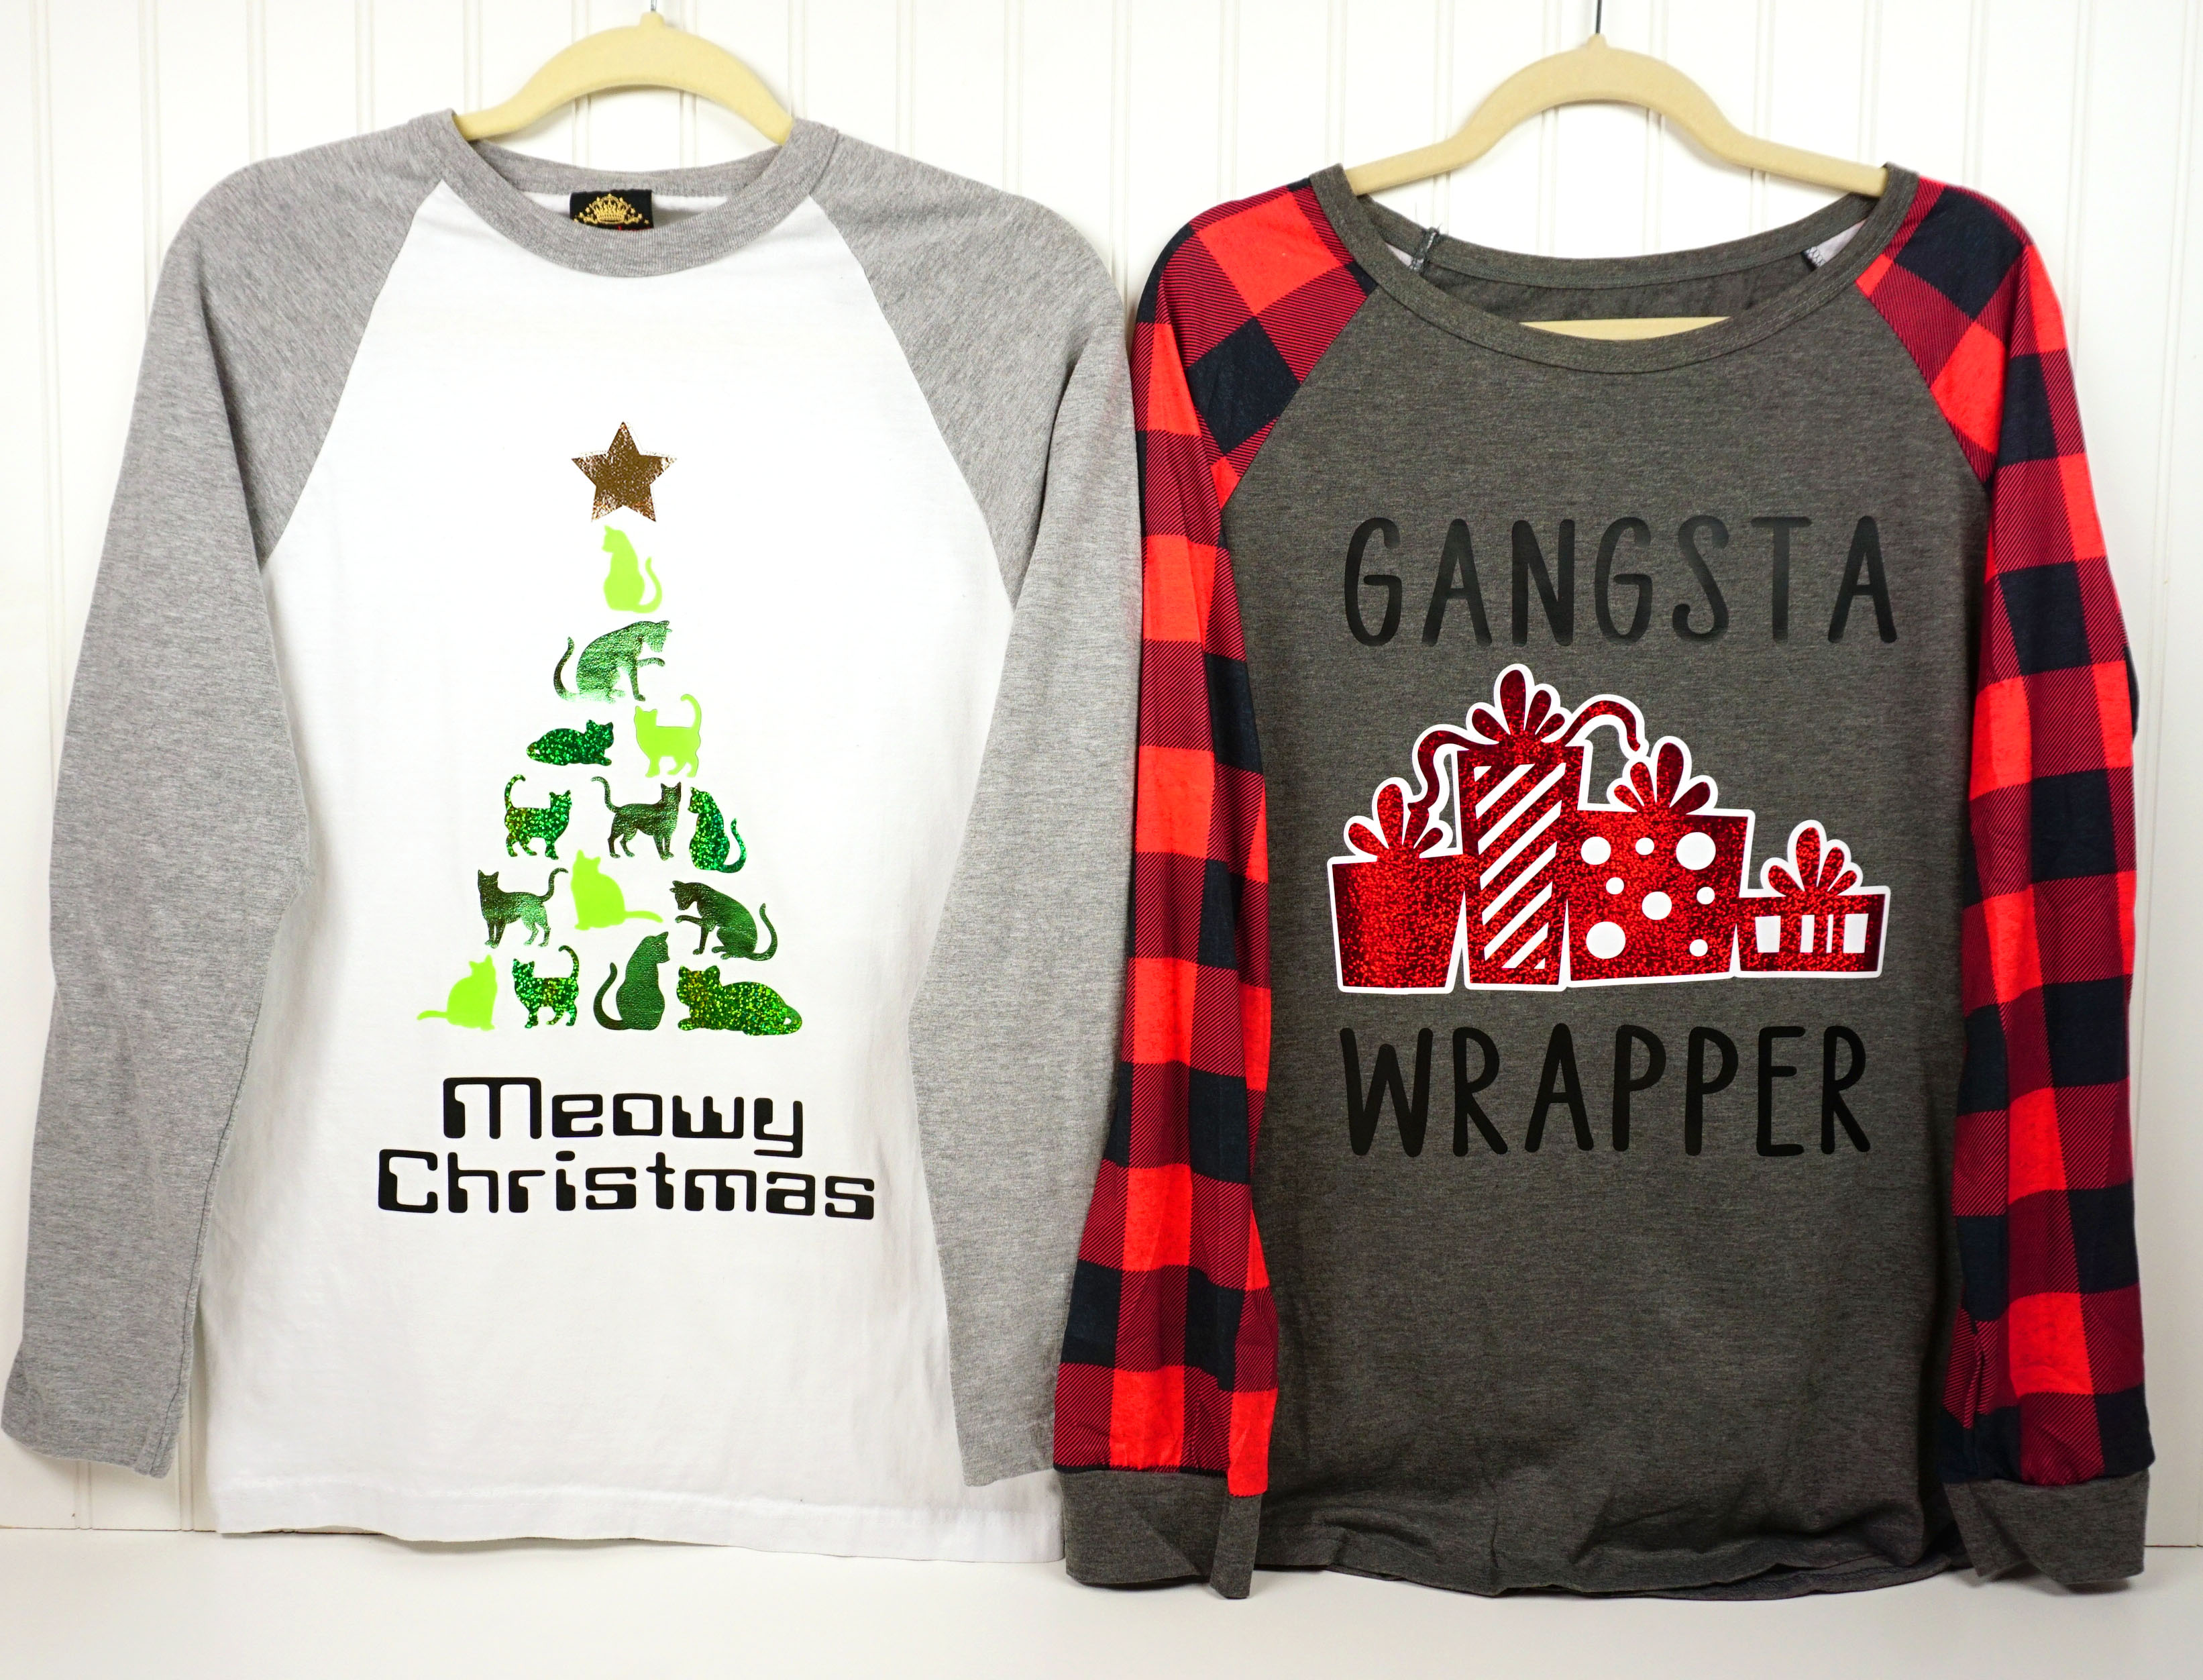 Funny Christmas Shirts with Cricut + Cut Files! - Happiness is Homemade